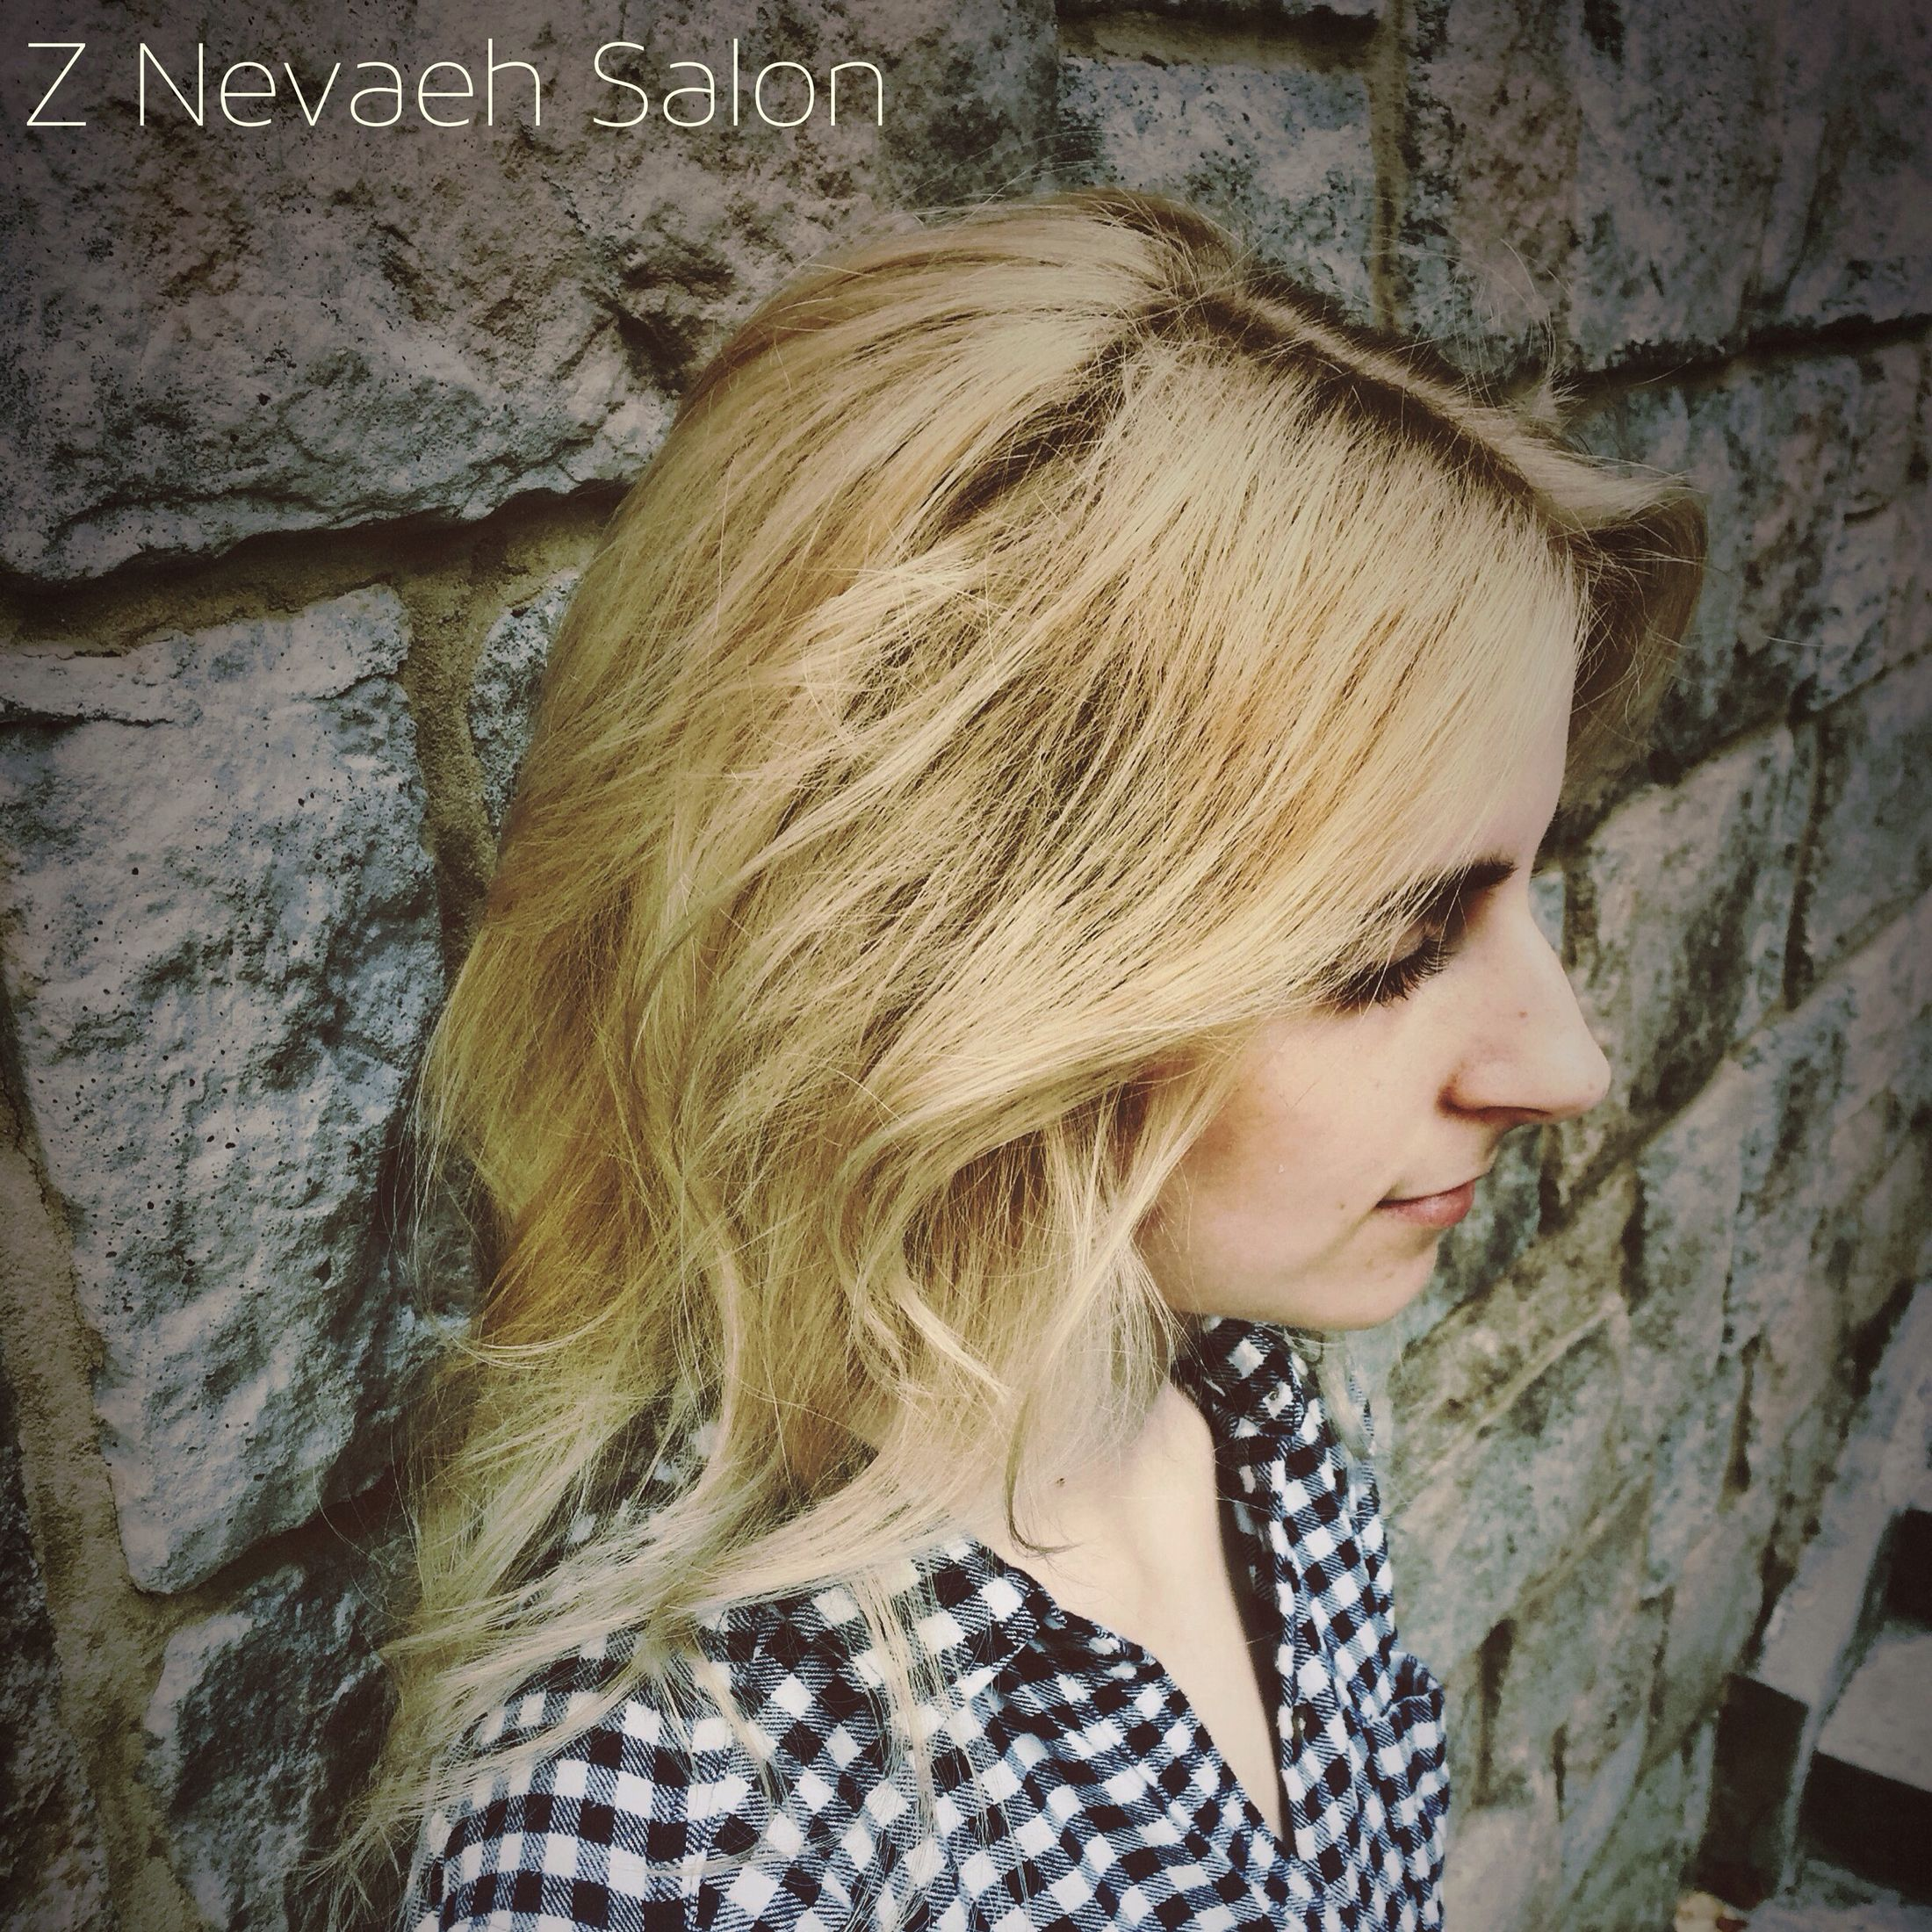 Gorgeous Glamour Blonde & Shag Haircut @znevaehsalon Check This Out Ontrend Hair Z Nevaeh Salon L'Oreal Professionnel Blondehair Balayage Inoa